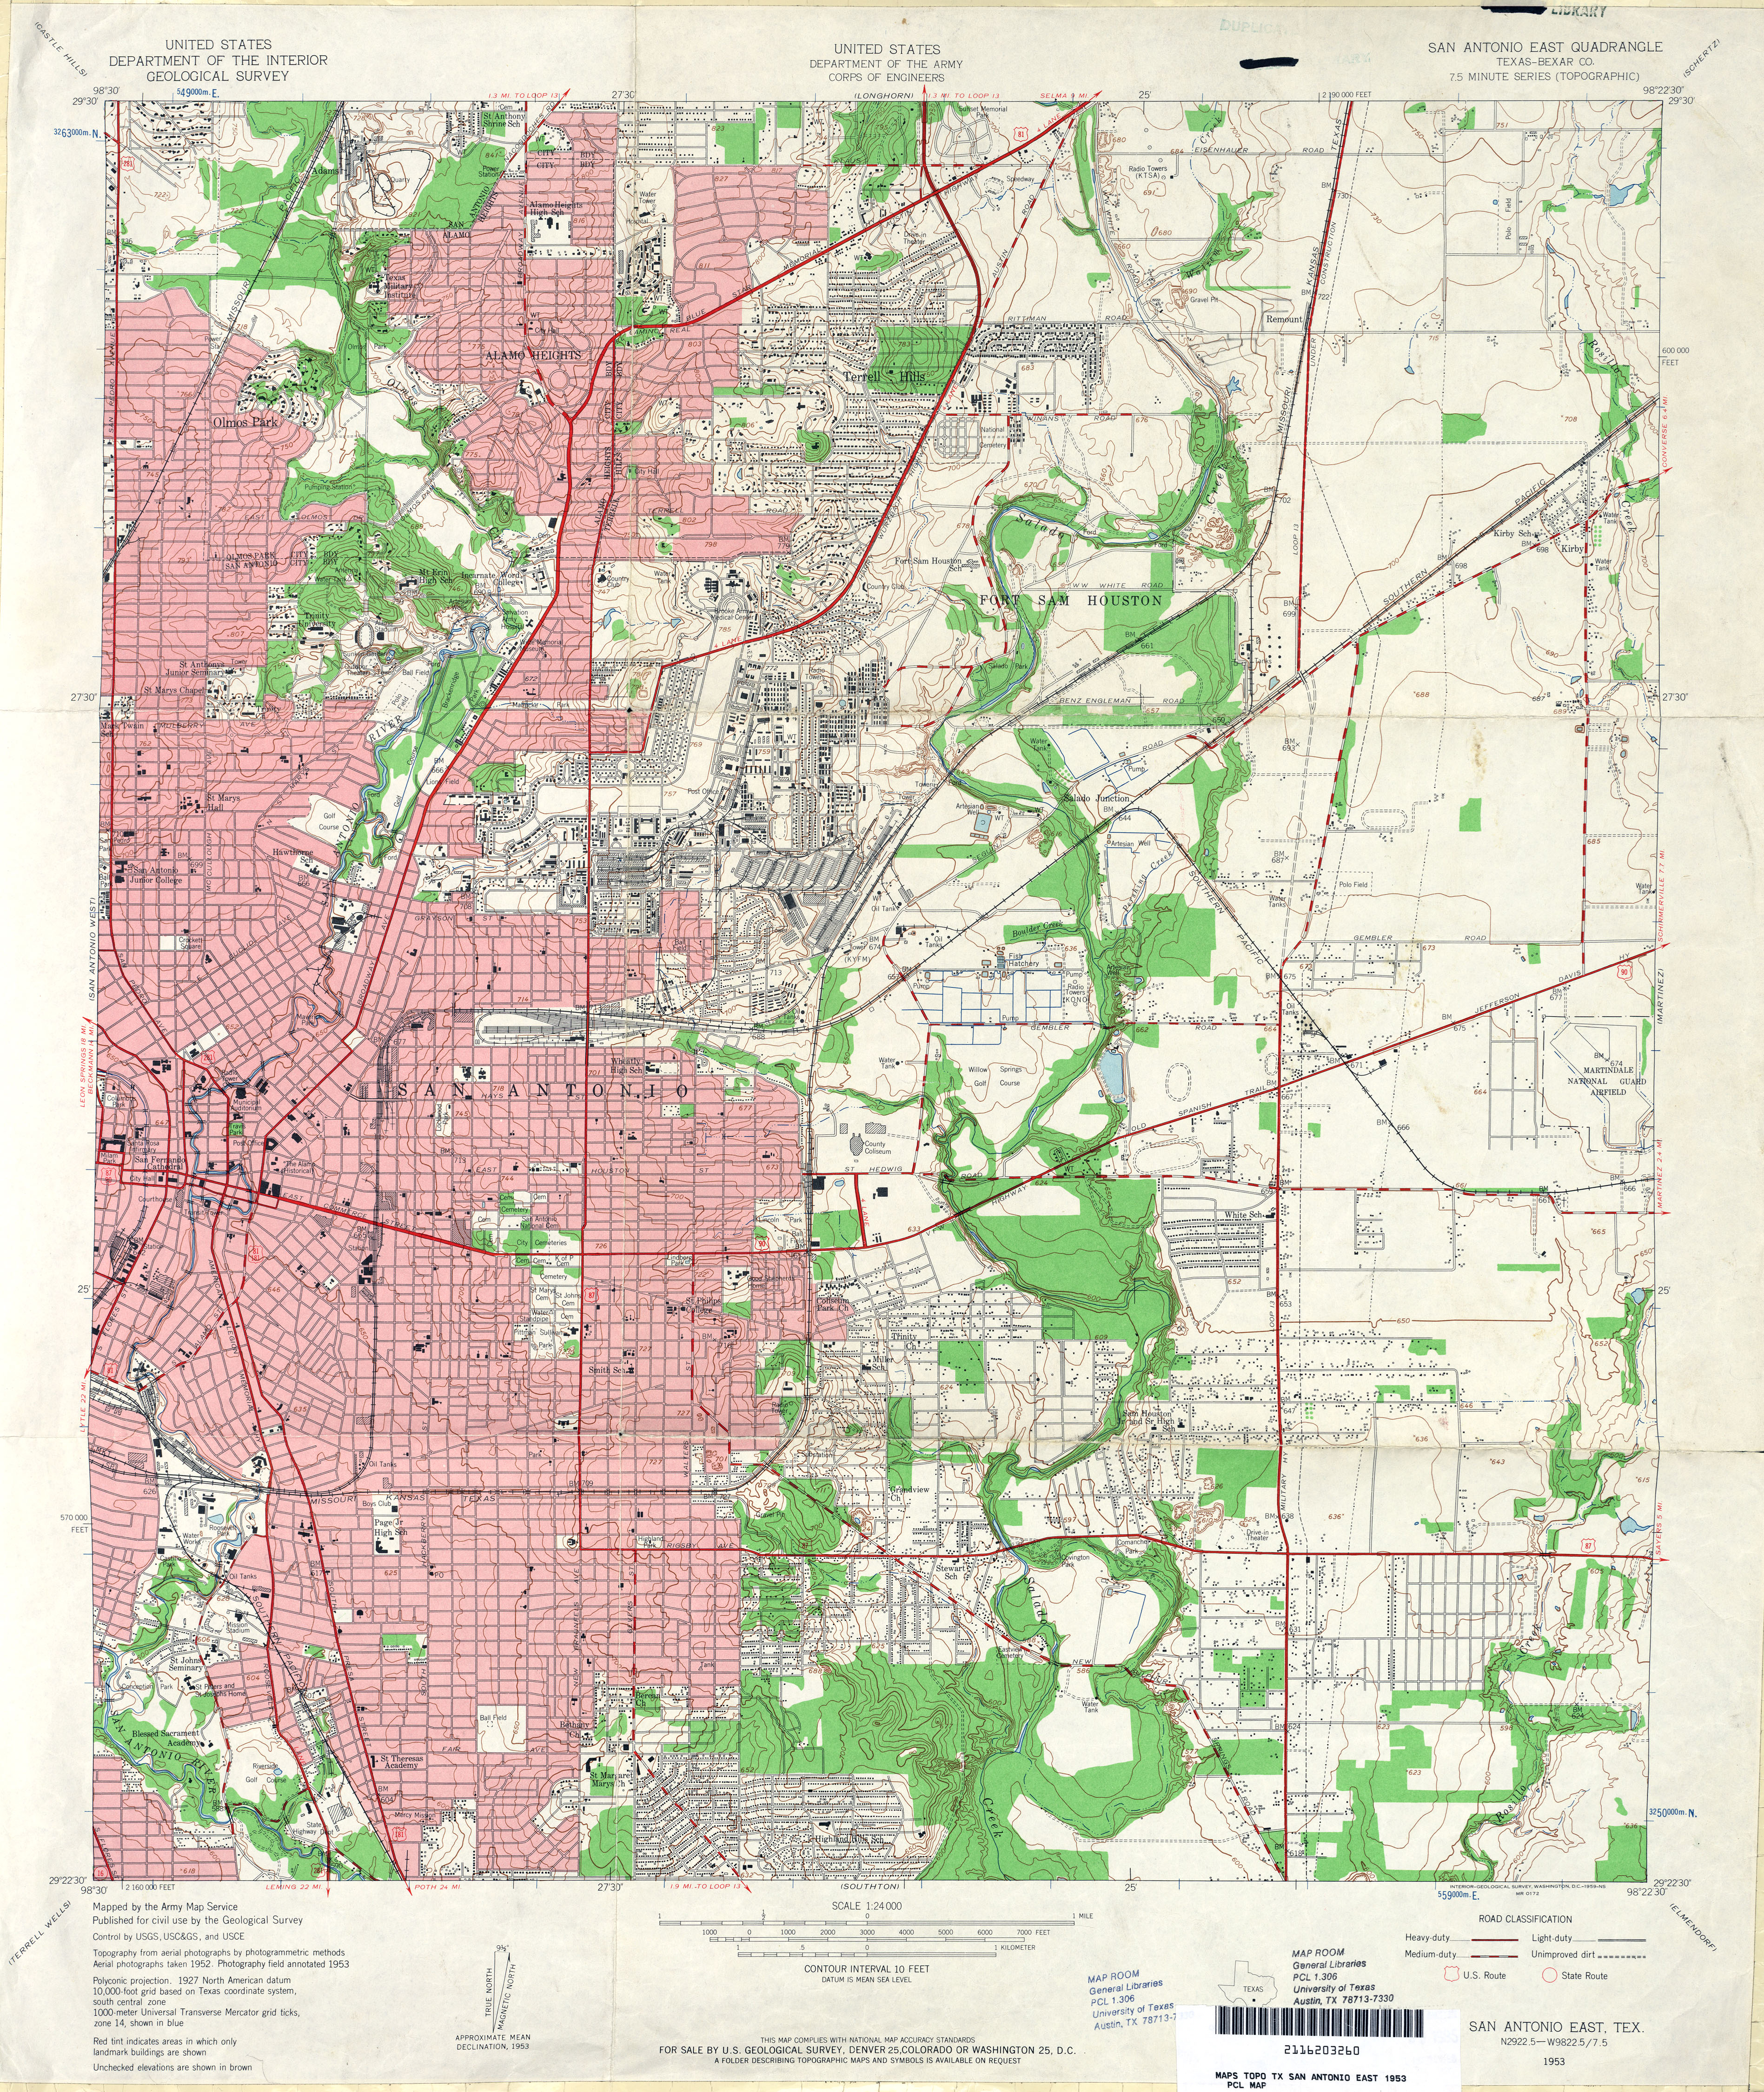 Texas Topographic Maps Perry Castaneda Map Collection Ut Library - San-antonio-us-map